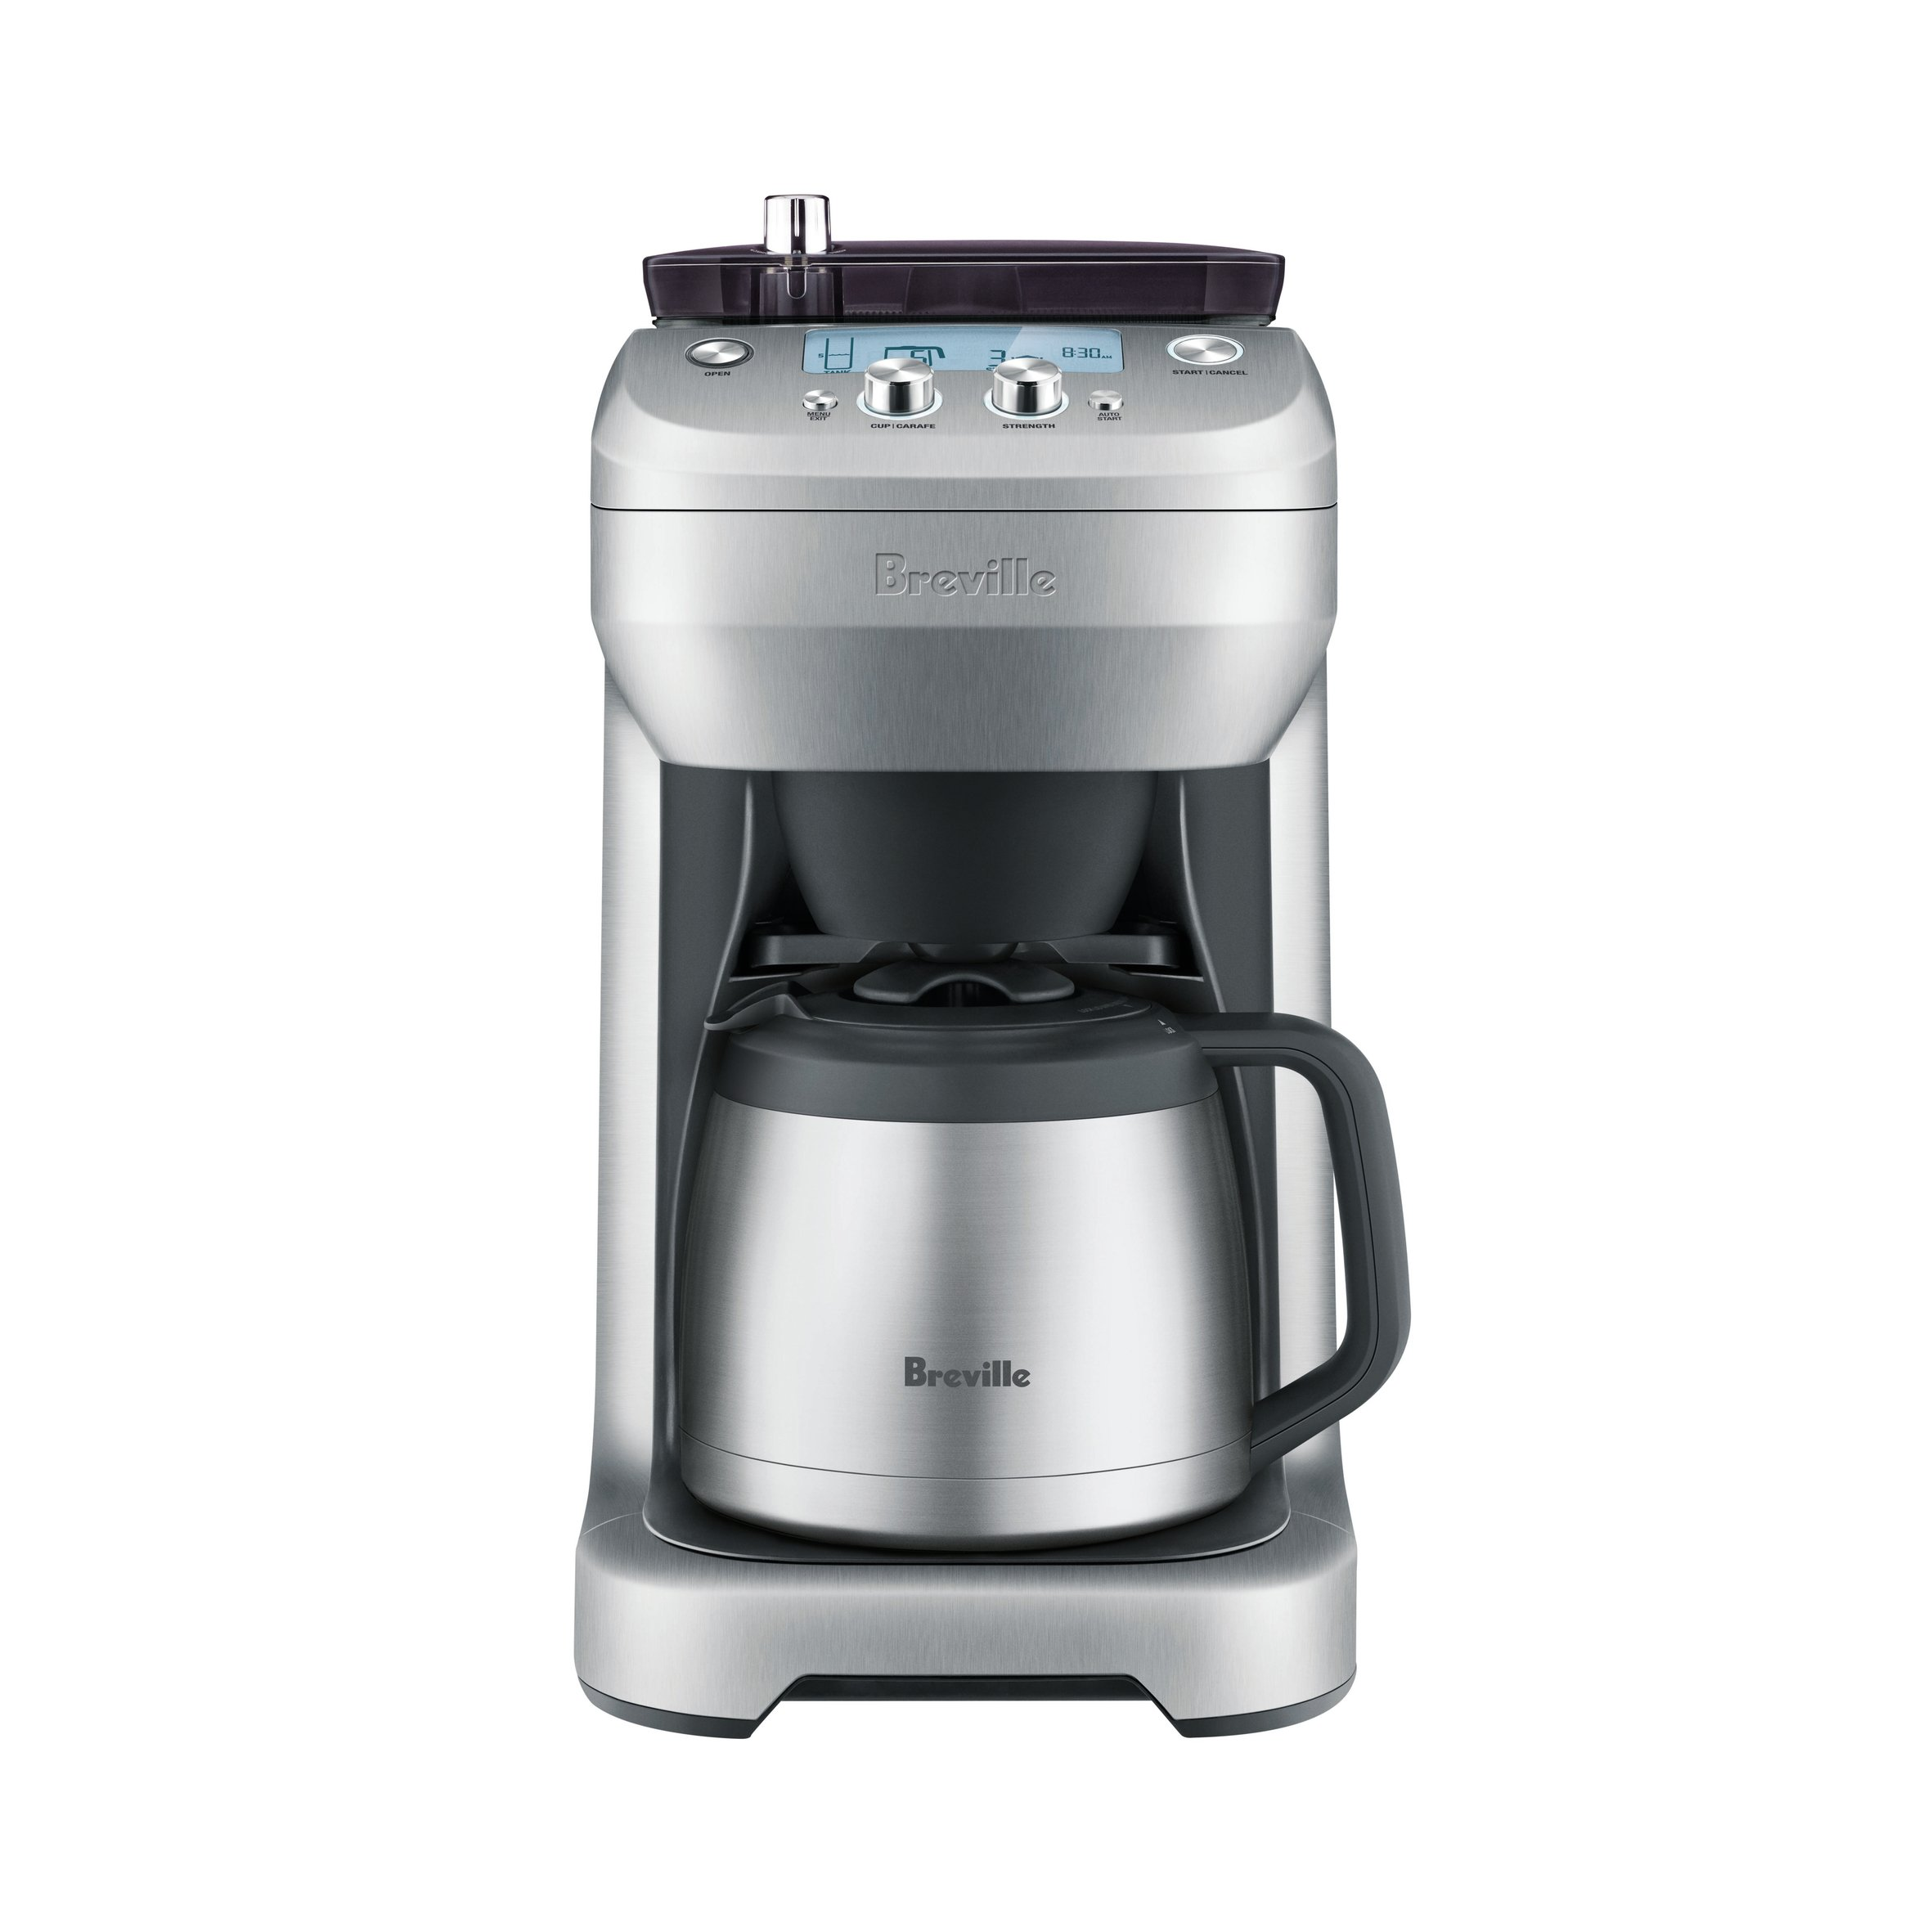 Breville BDC650BSS Grind Control, Silver, Medium by Breville